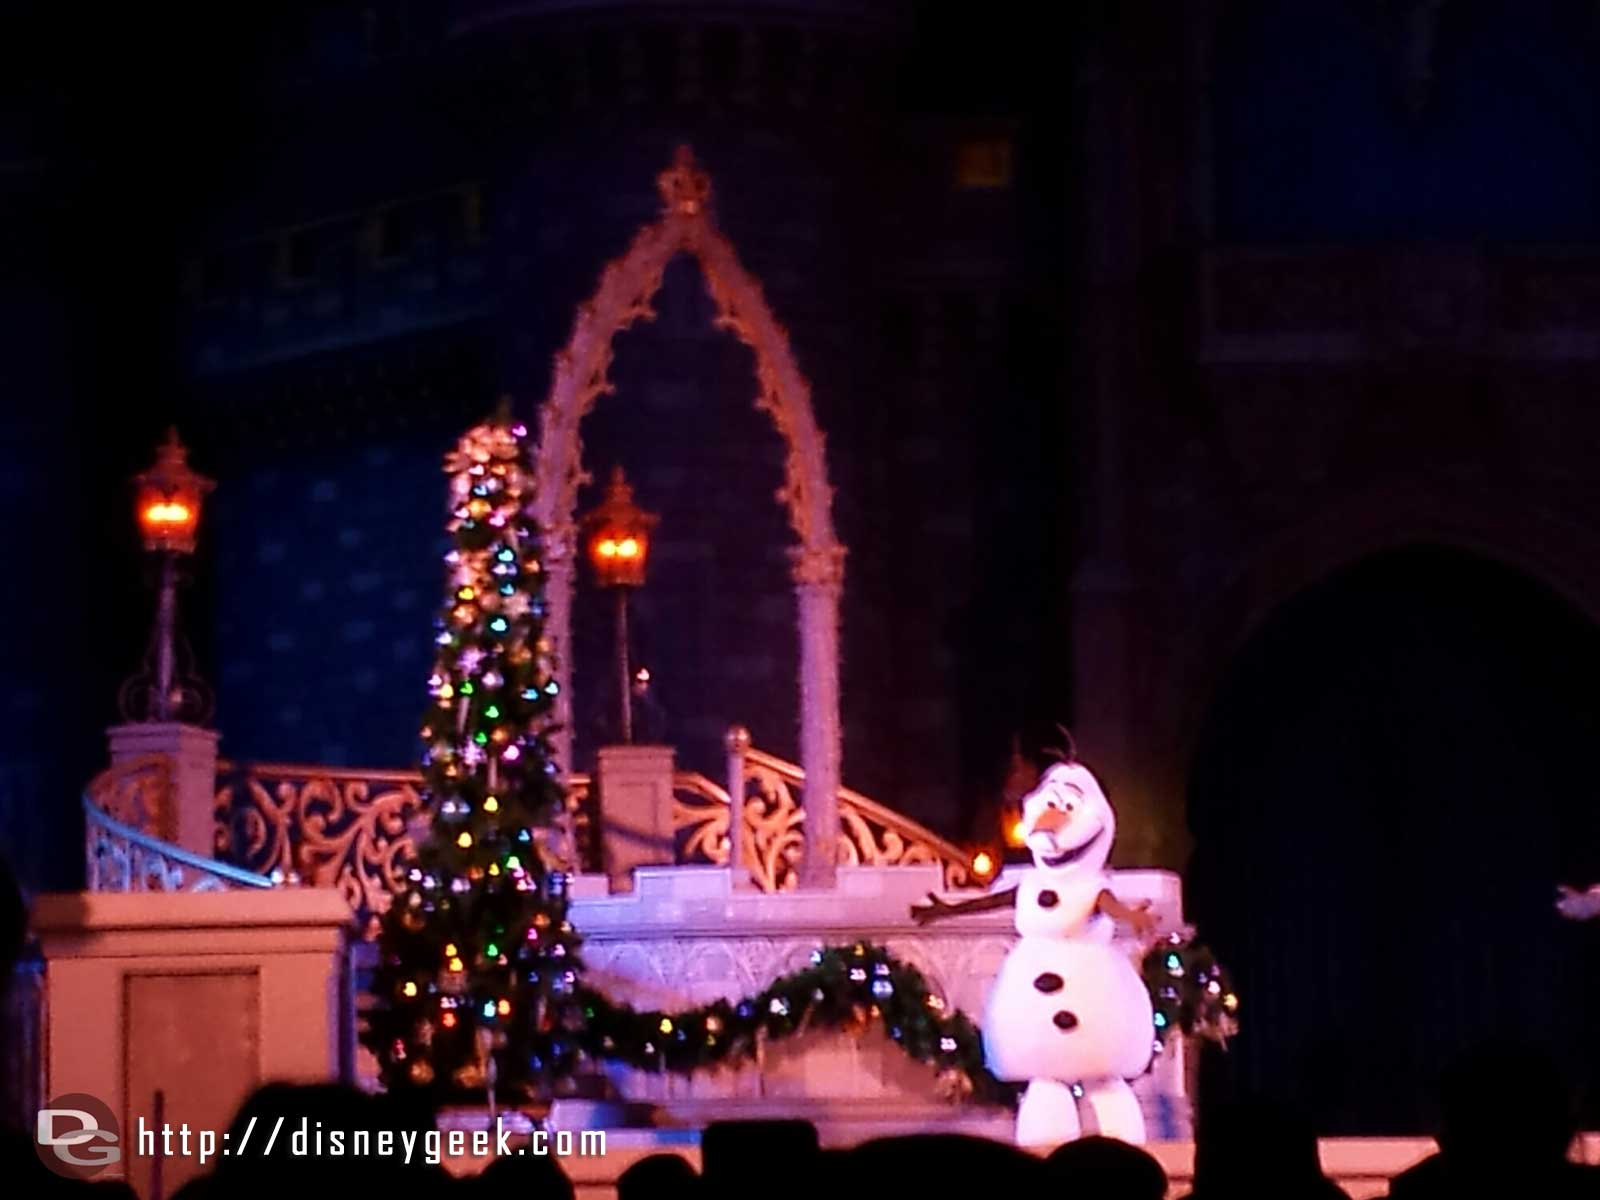 Olaf during the Frozen Holiday Wish